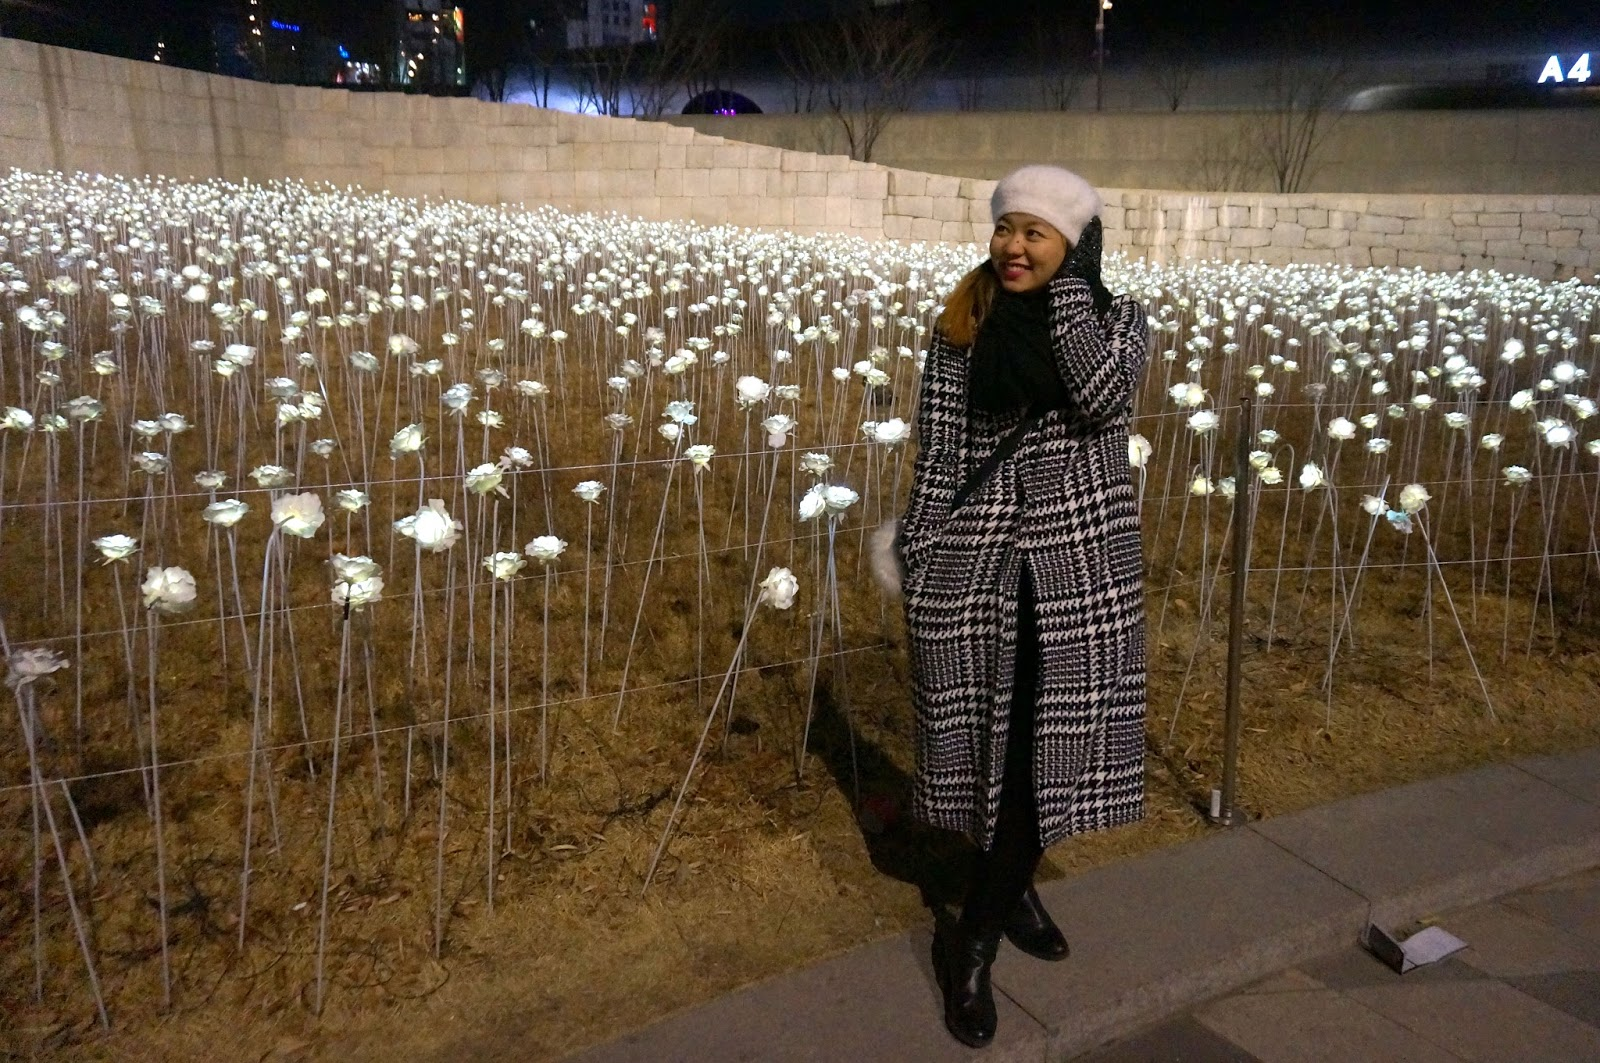 Walk with Cham: LED Rose Garden Dongdaemun Design Plaza Seoul South ...